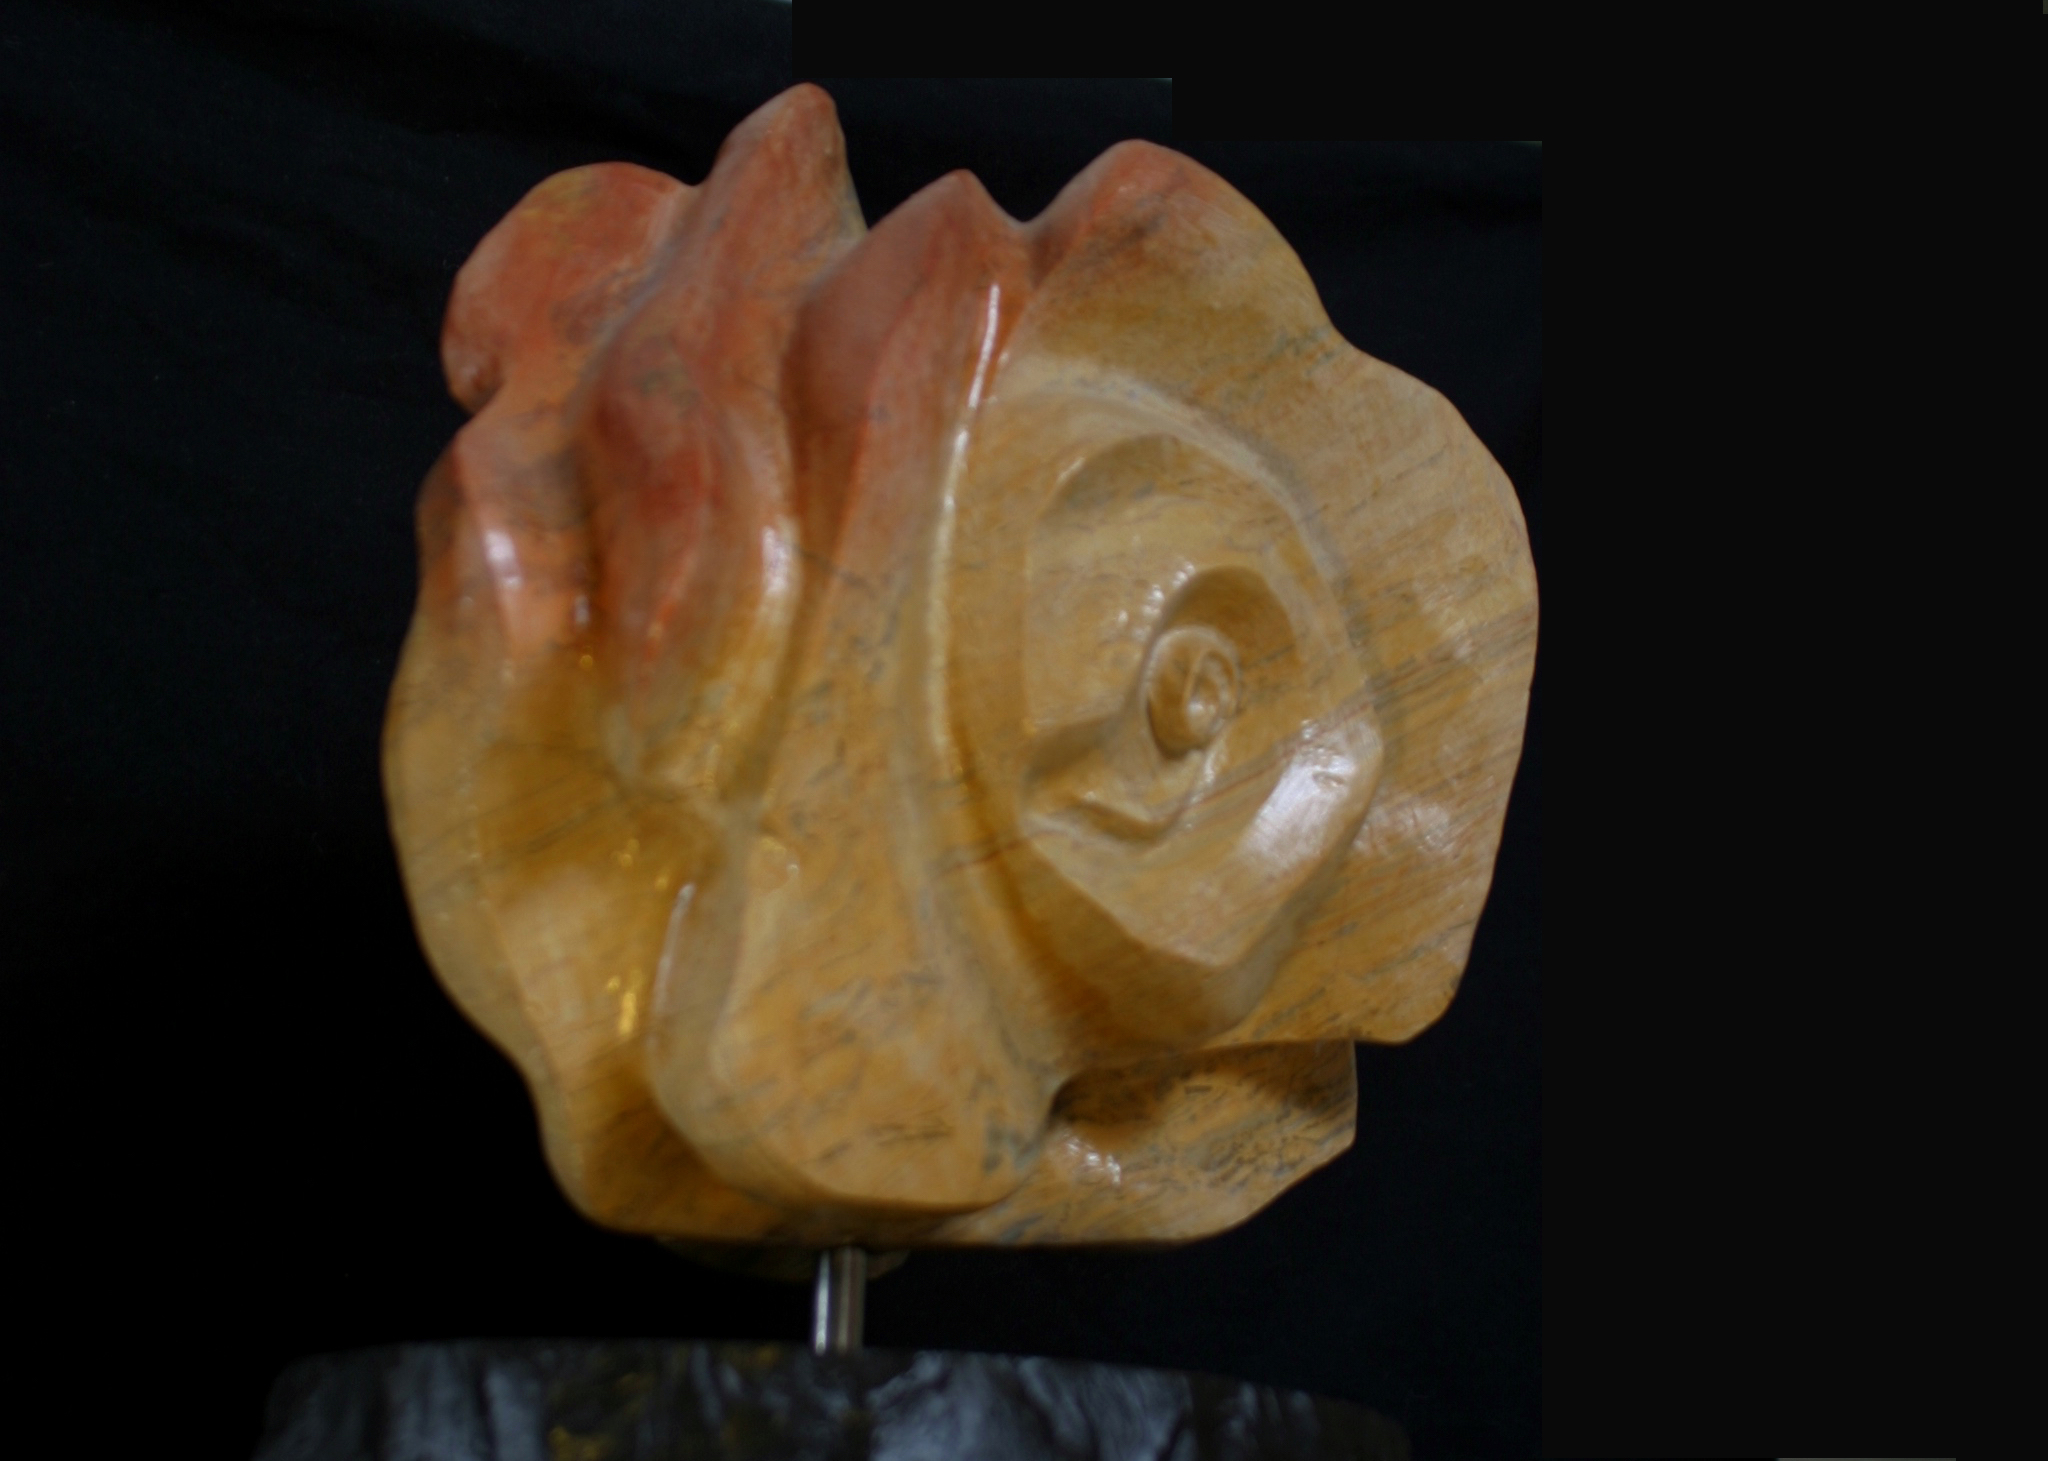 SLANTED MEDITATION ROSE/BUDDHA